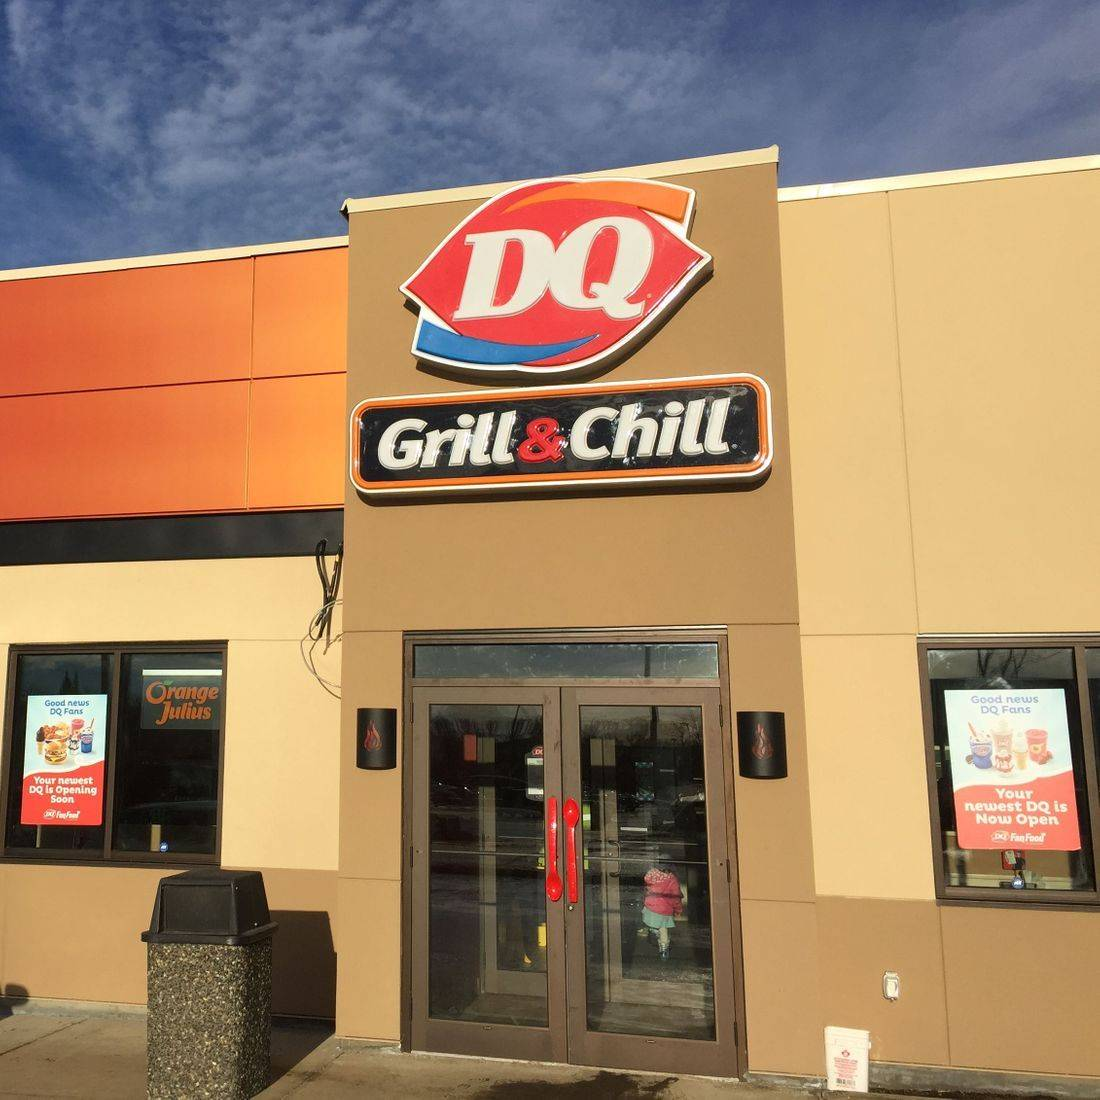 A Dairy Queen store